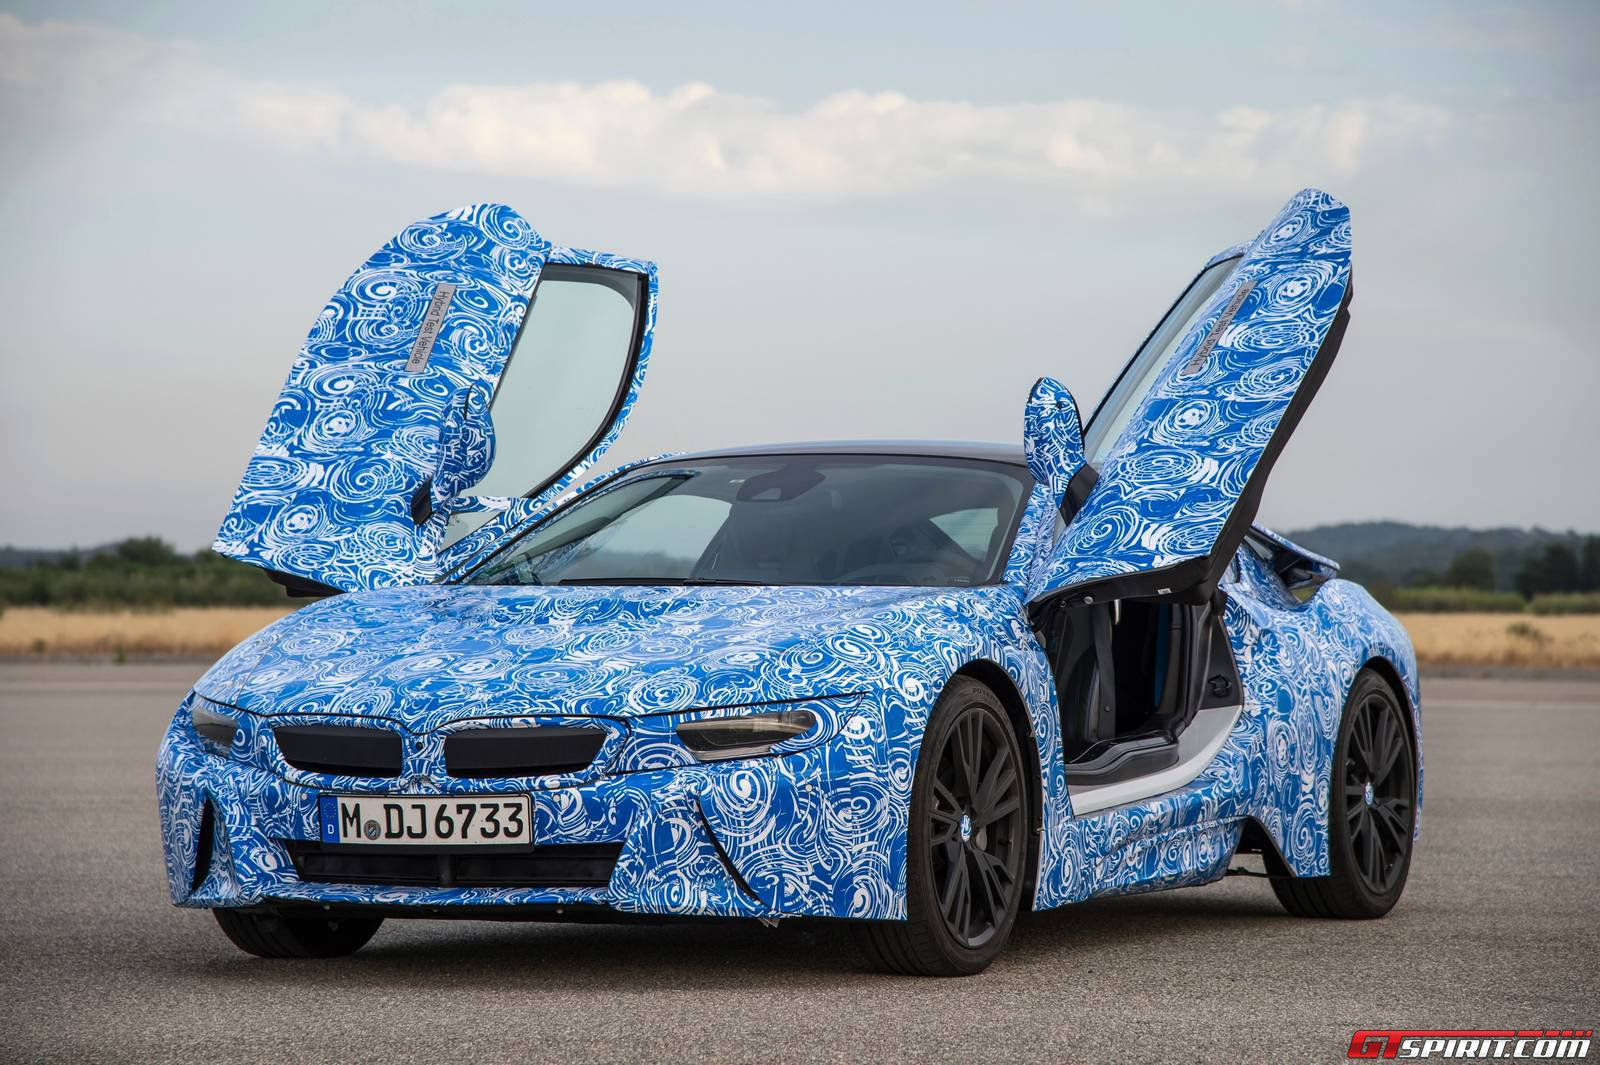 bmw i8 delivers 362hp, 50:50 weight distribution and gorilla glass